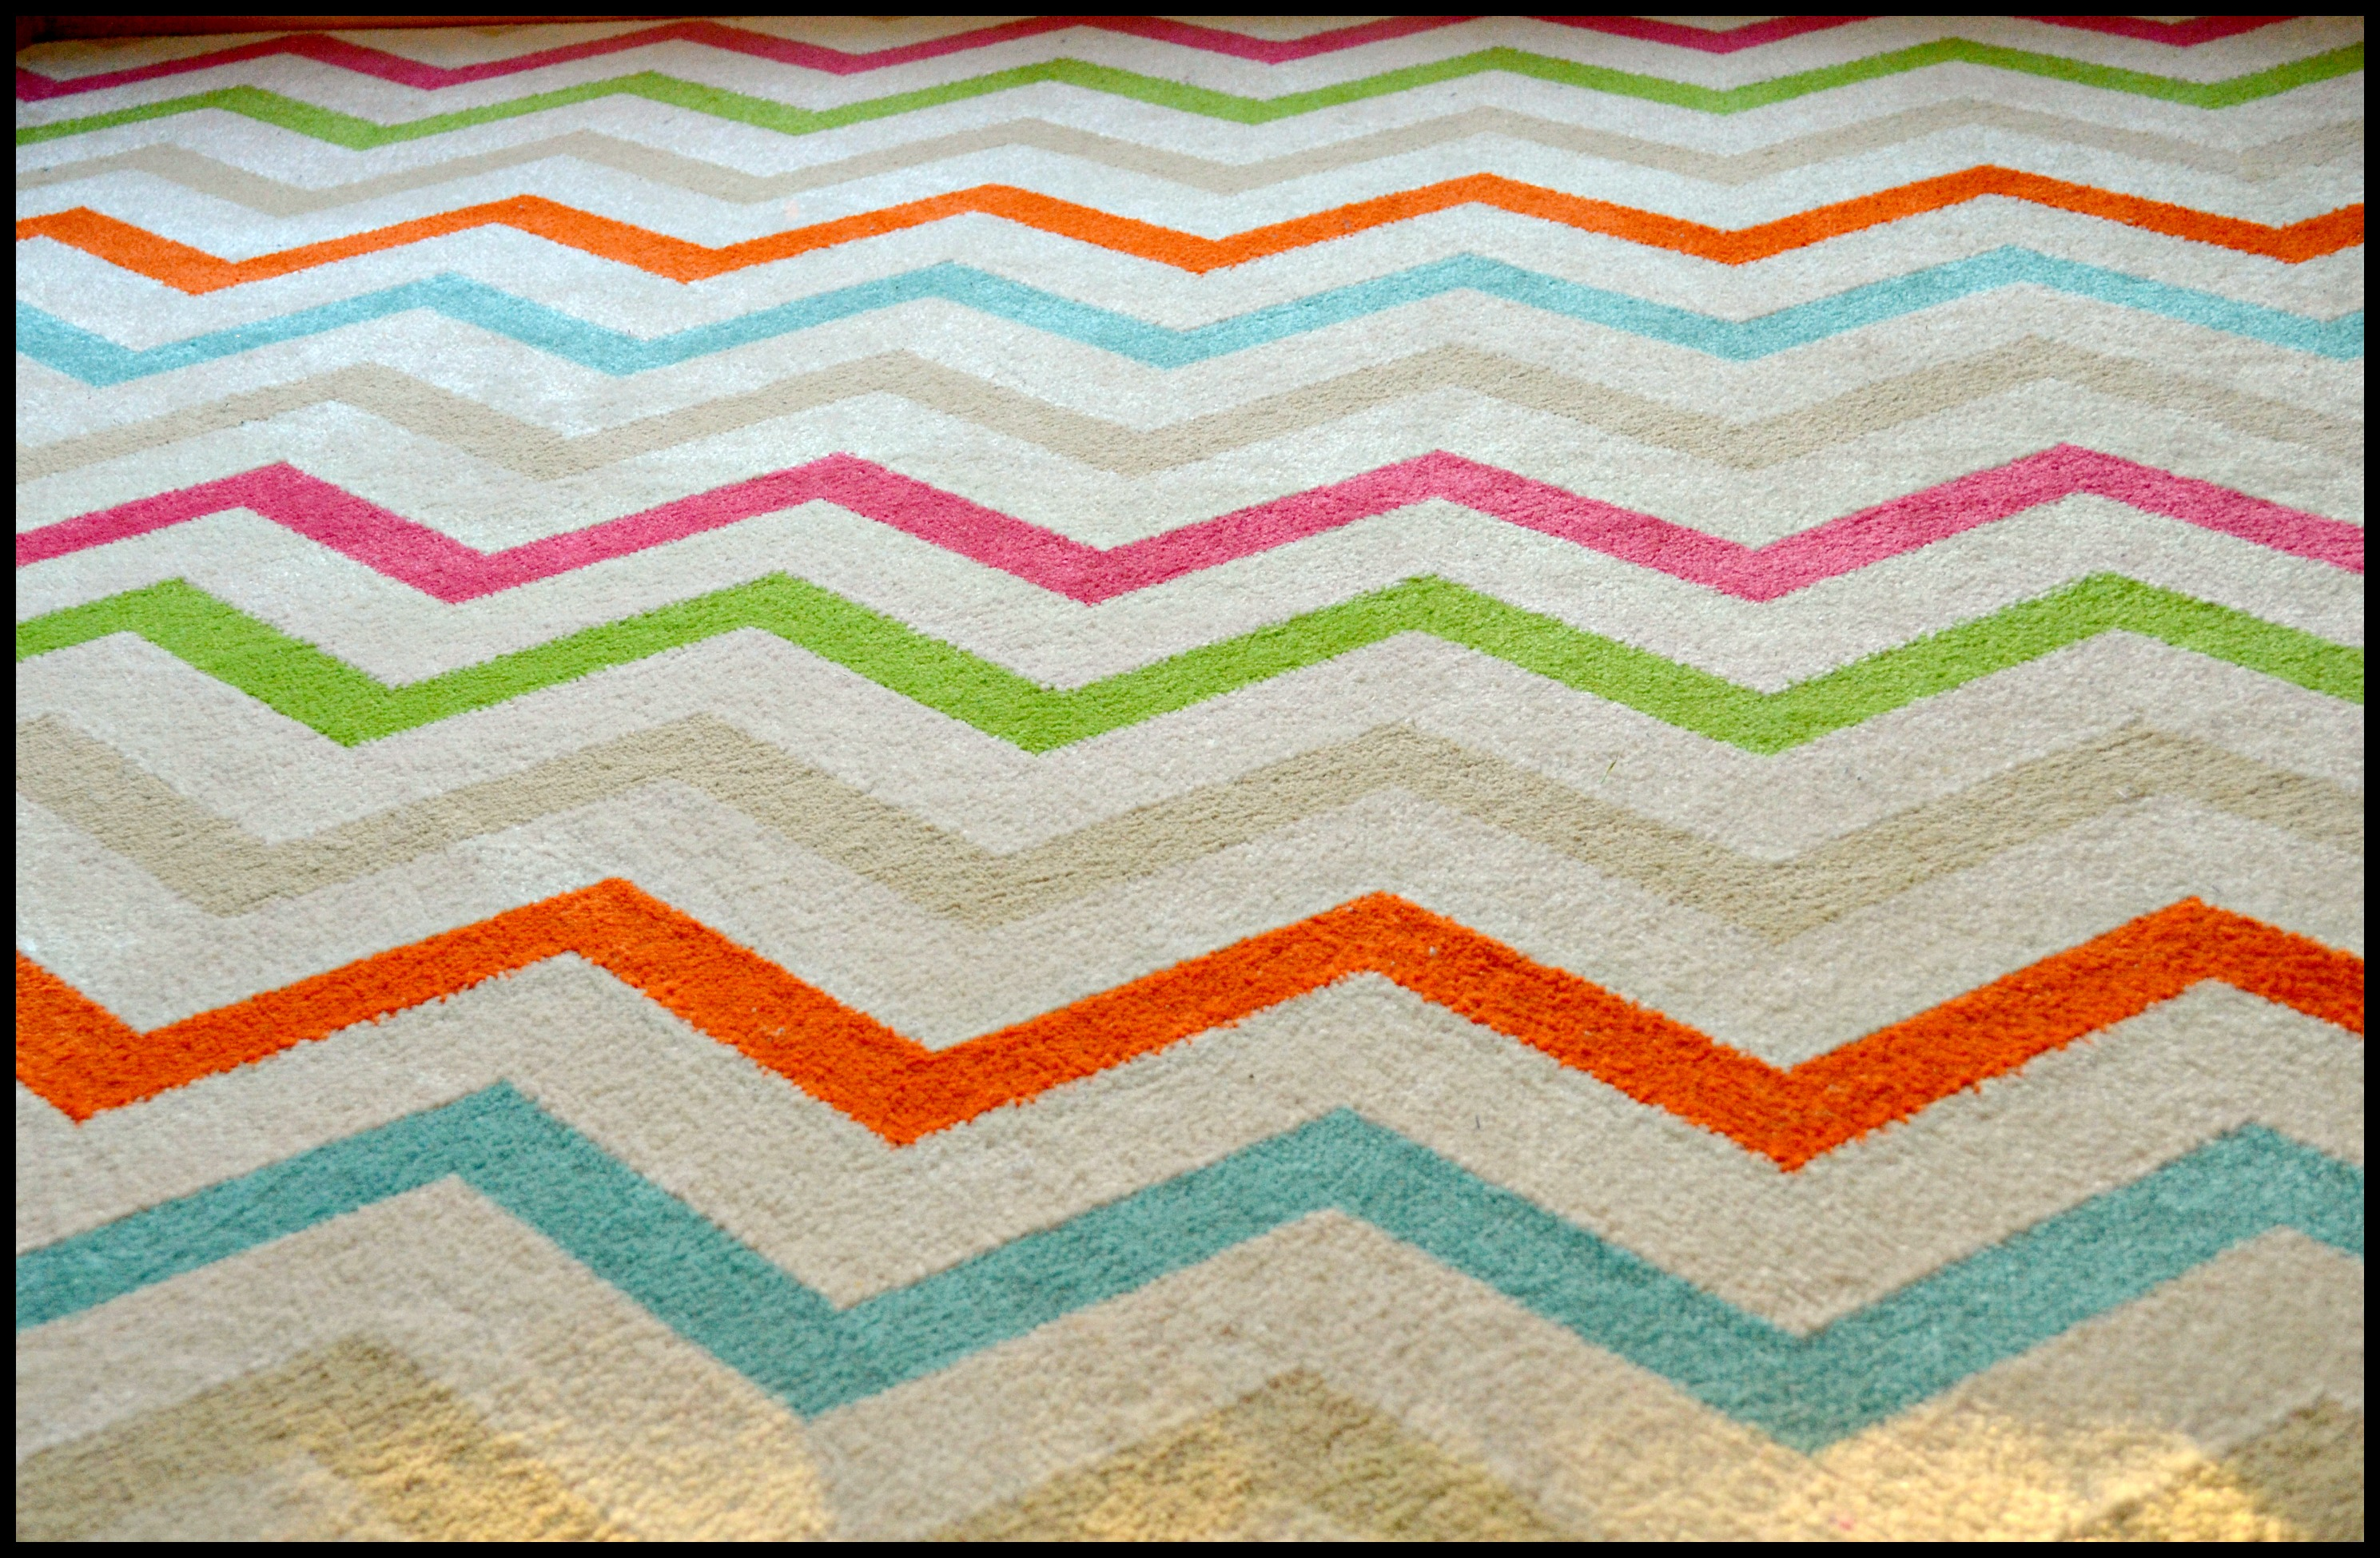 Brighten Up a Room With A New Rug: Mohawk Rug Review #ilovemymohawkrug